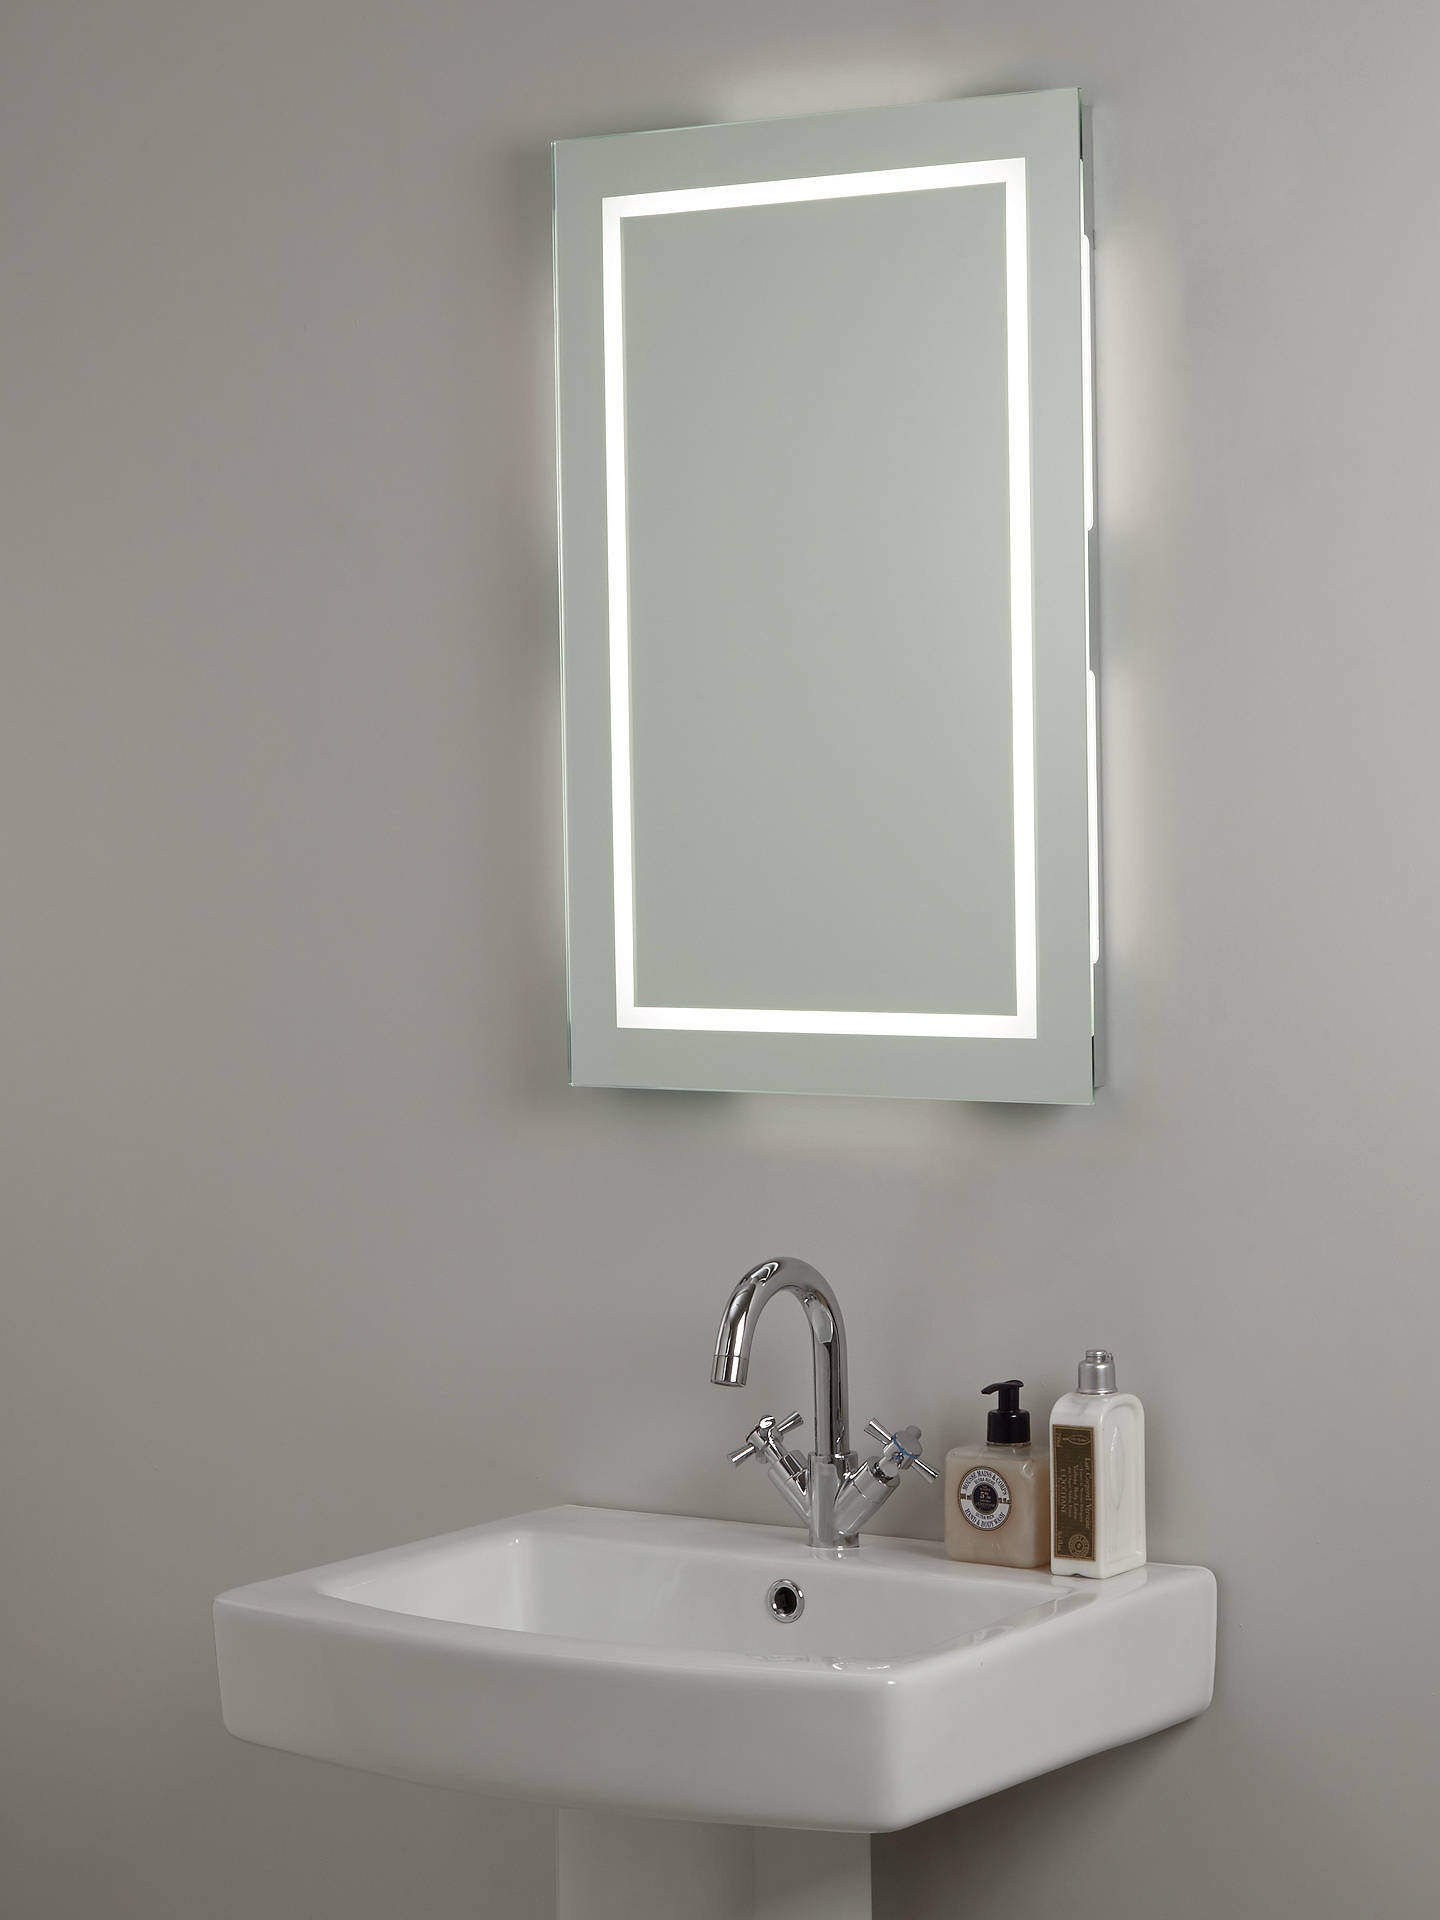 john lewis partners led frame illuminated bathroom. Black Bedroom Furniture Sets. Home Design Ideas